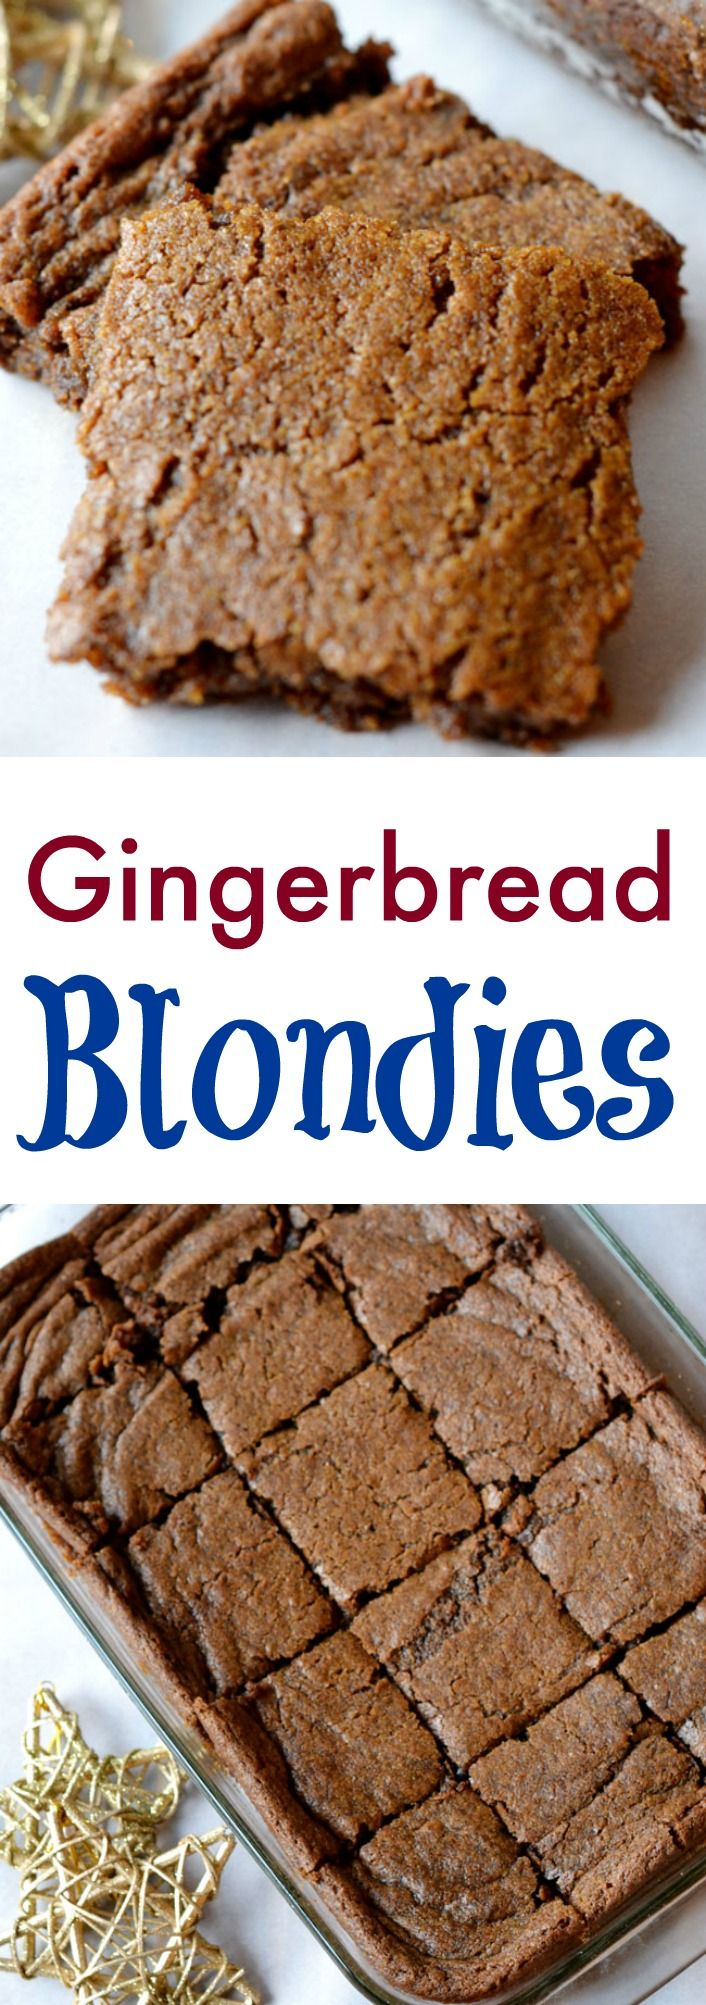 Best 25 fun easy recipes ideas on pinterest fire pit desserts gingerbread blondies easy recipes forumfinder Gallery